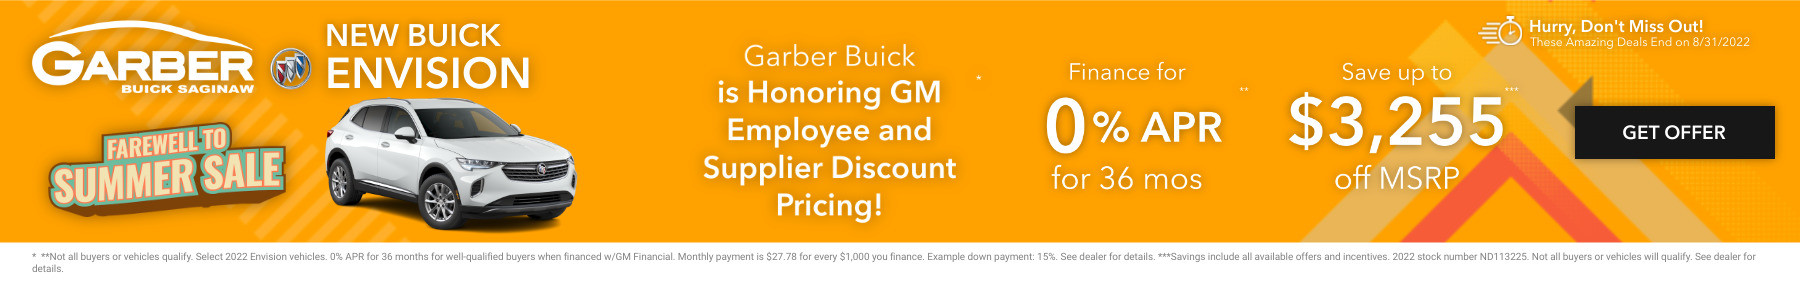 New Buick Envision Current Deals and Offers in Saginaw, MI